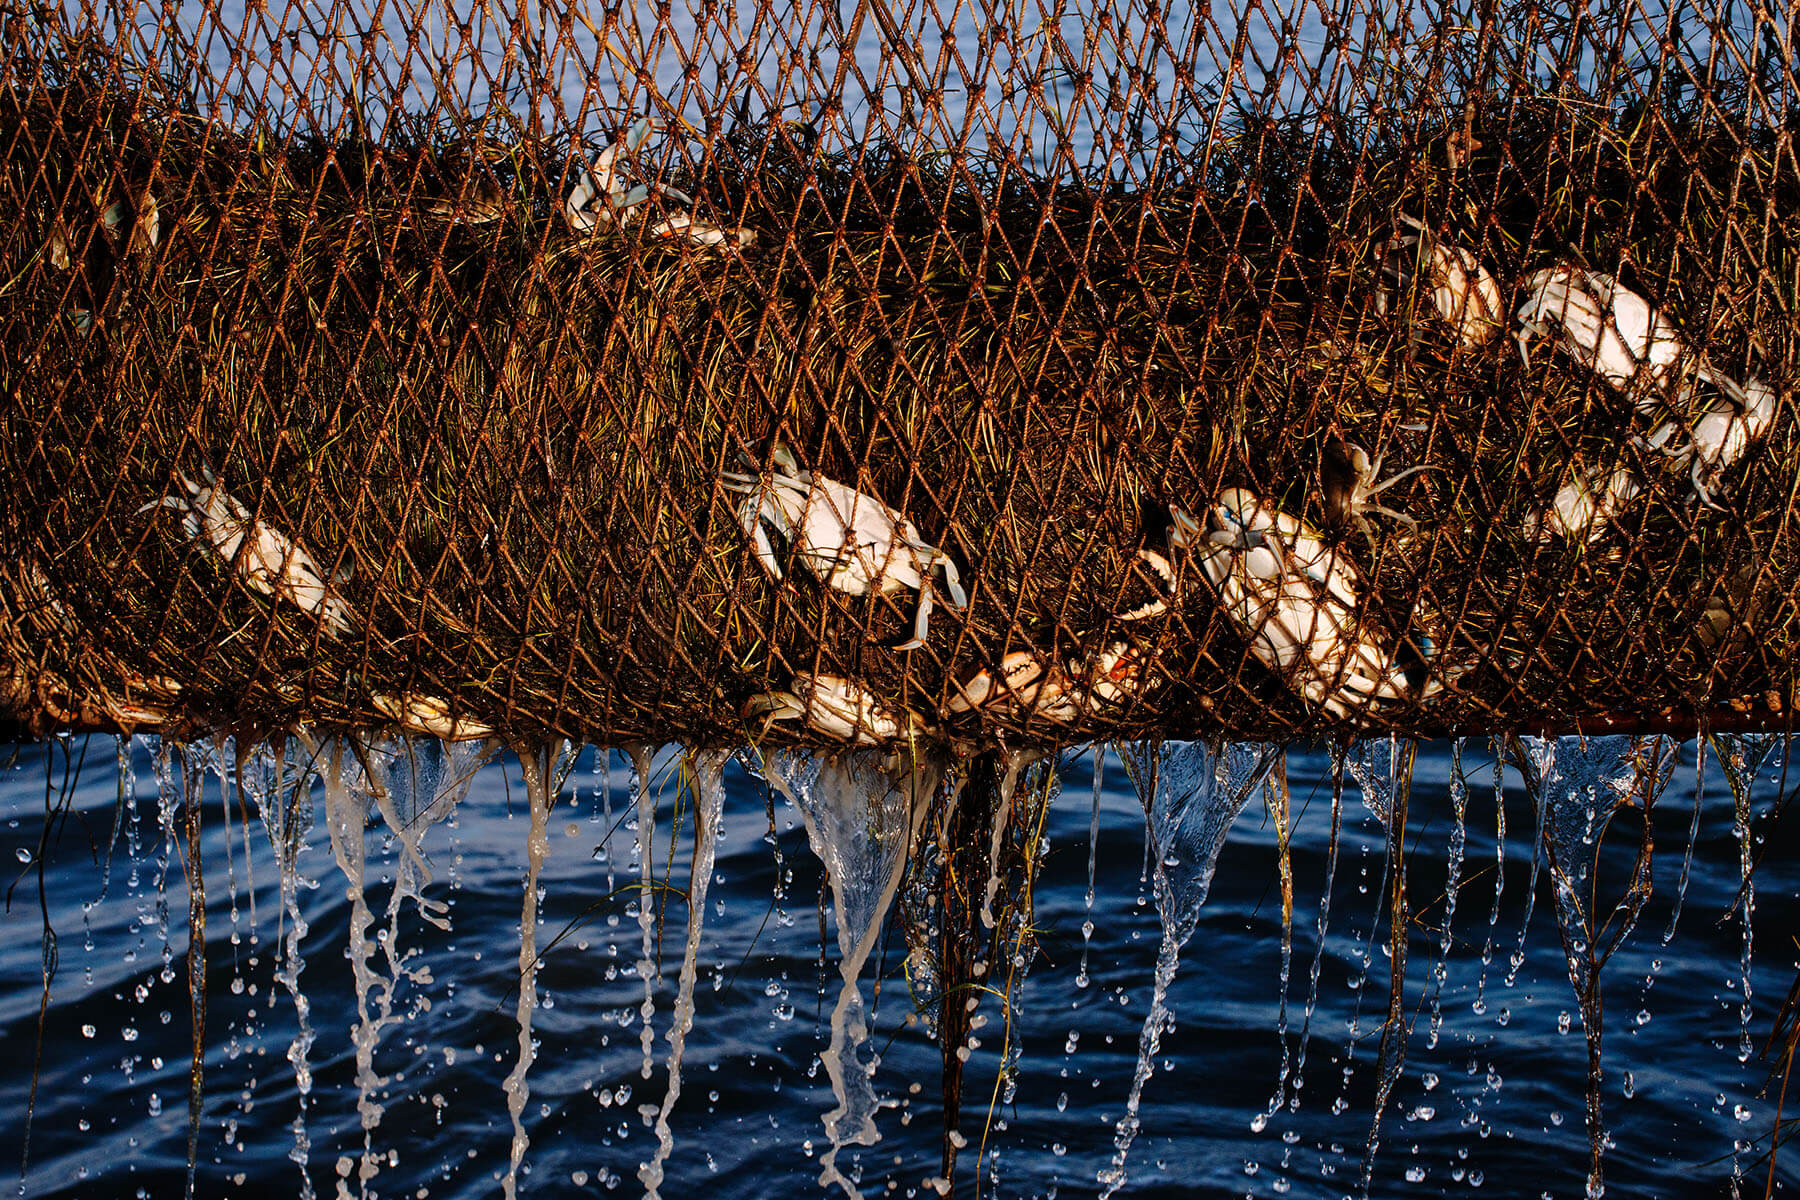 A harvest of crabs dumps from a net.